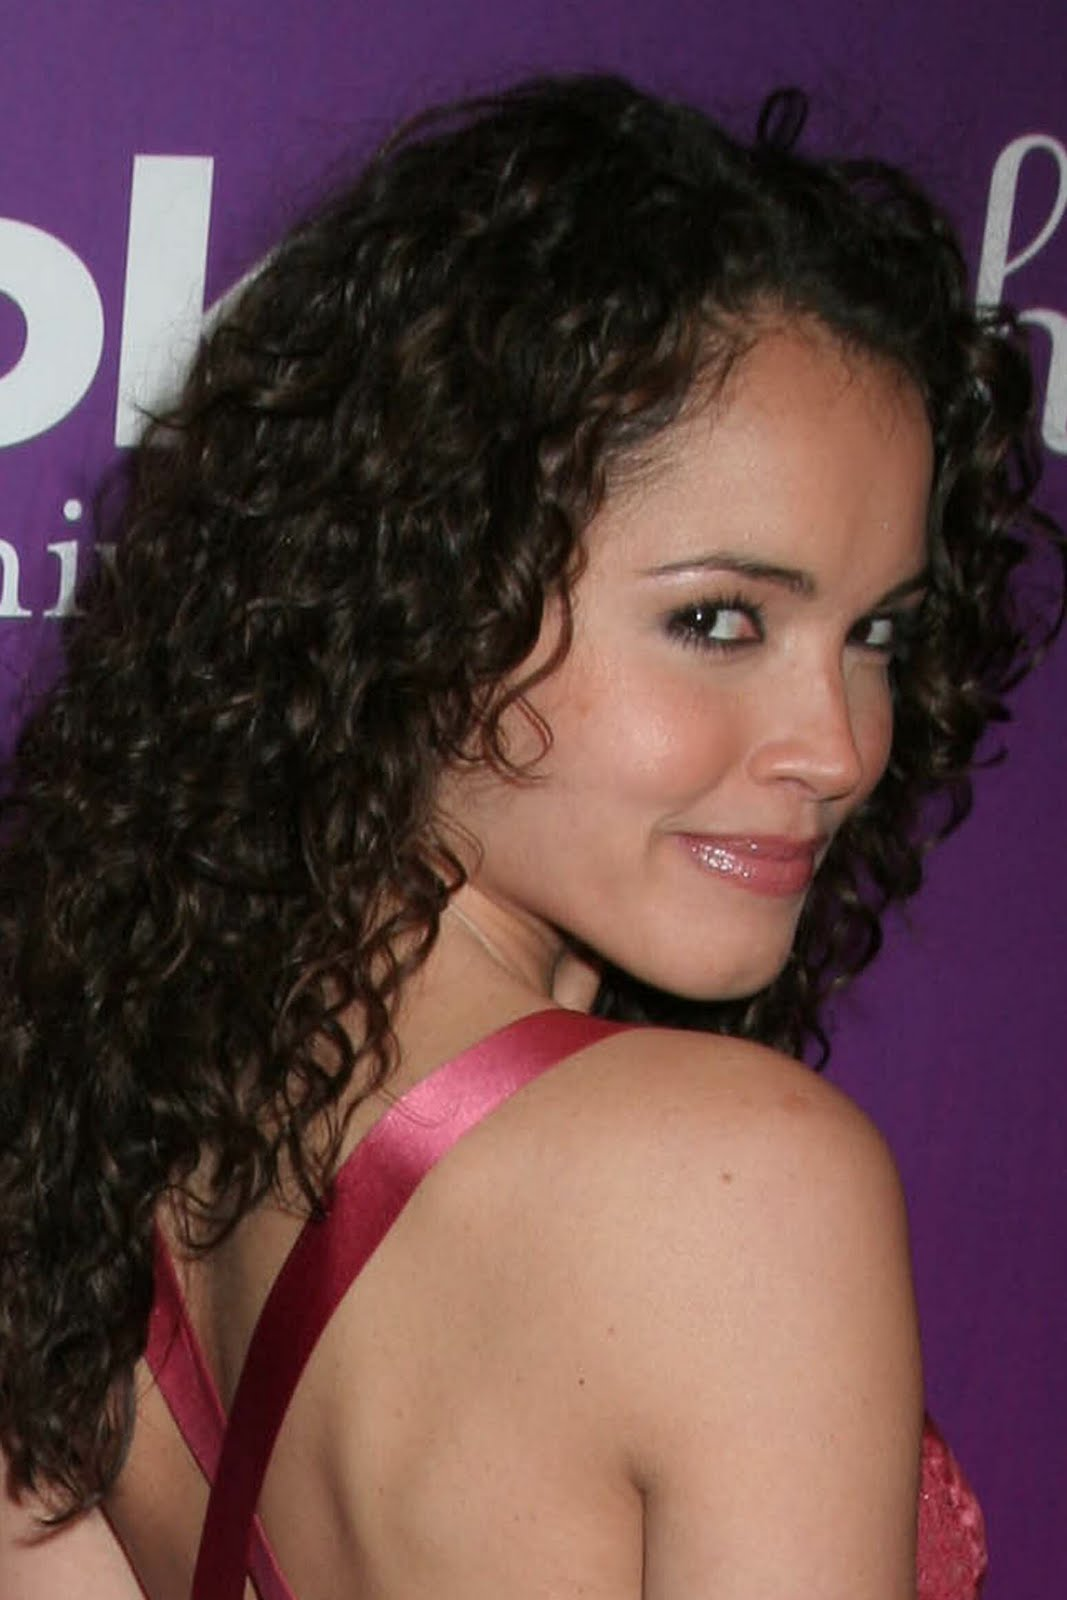 hairstyles popular 2012 celebrity medium curly hairstyle